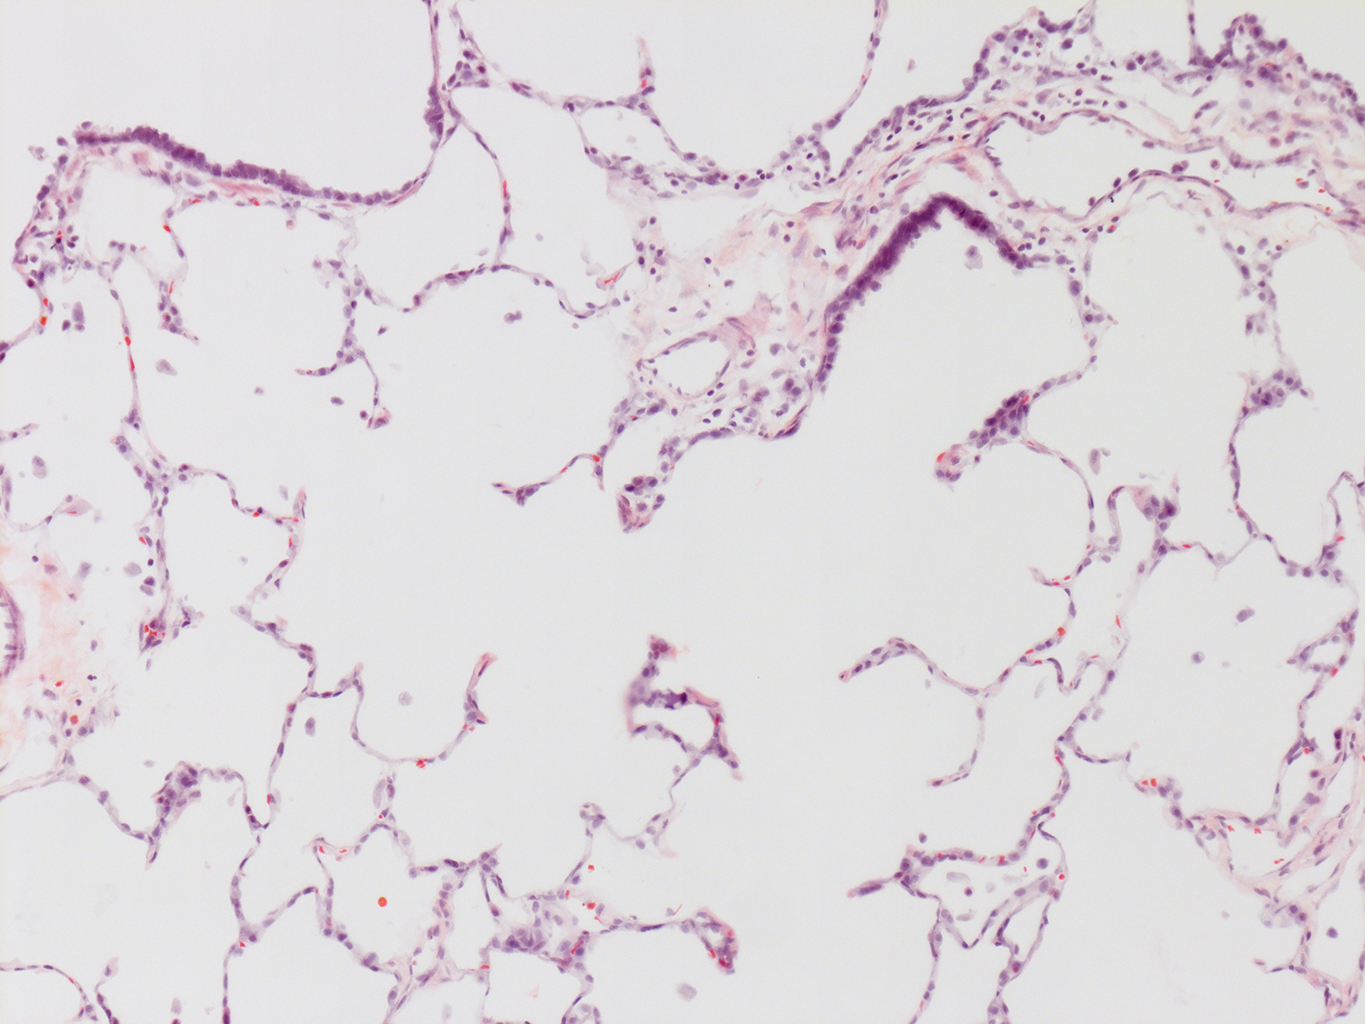 H&E Staining of 14 Month-Old Human Lung from Donor D072-RLL-13B2